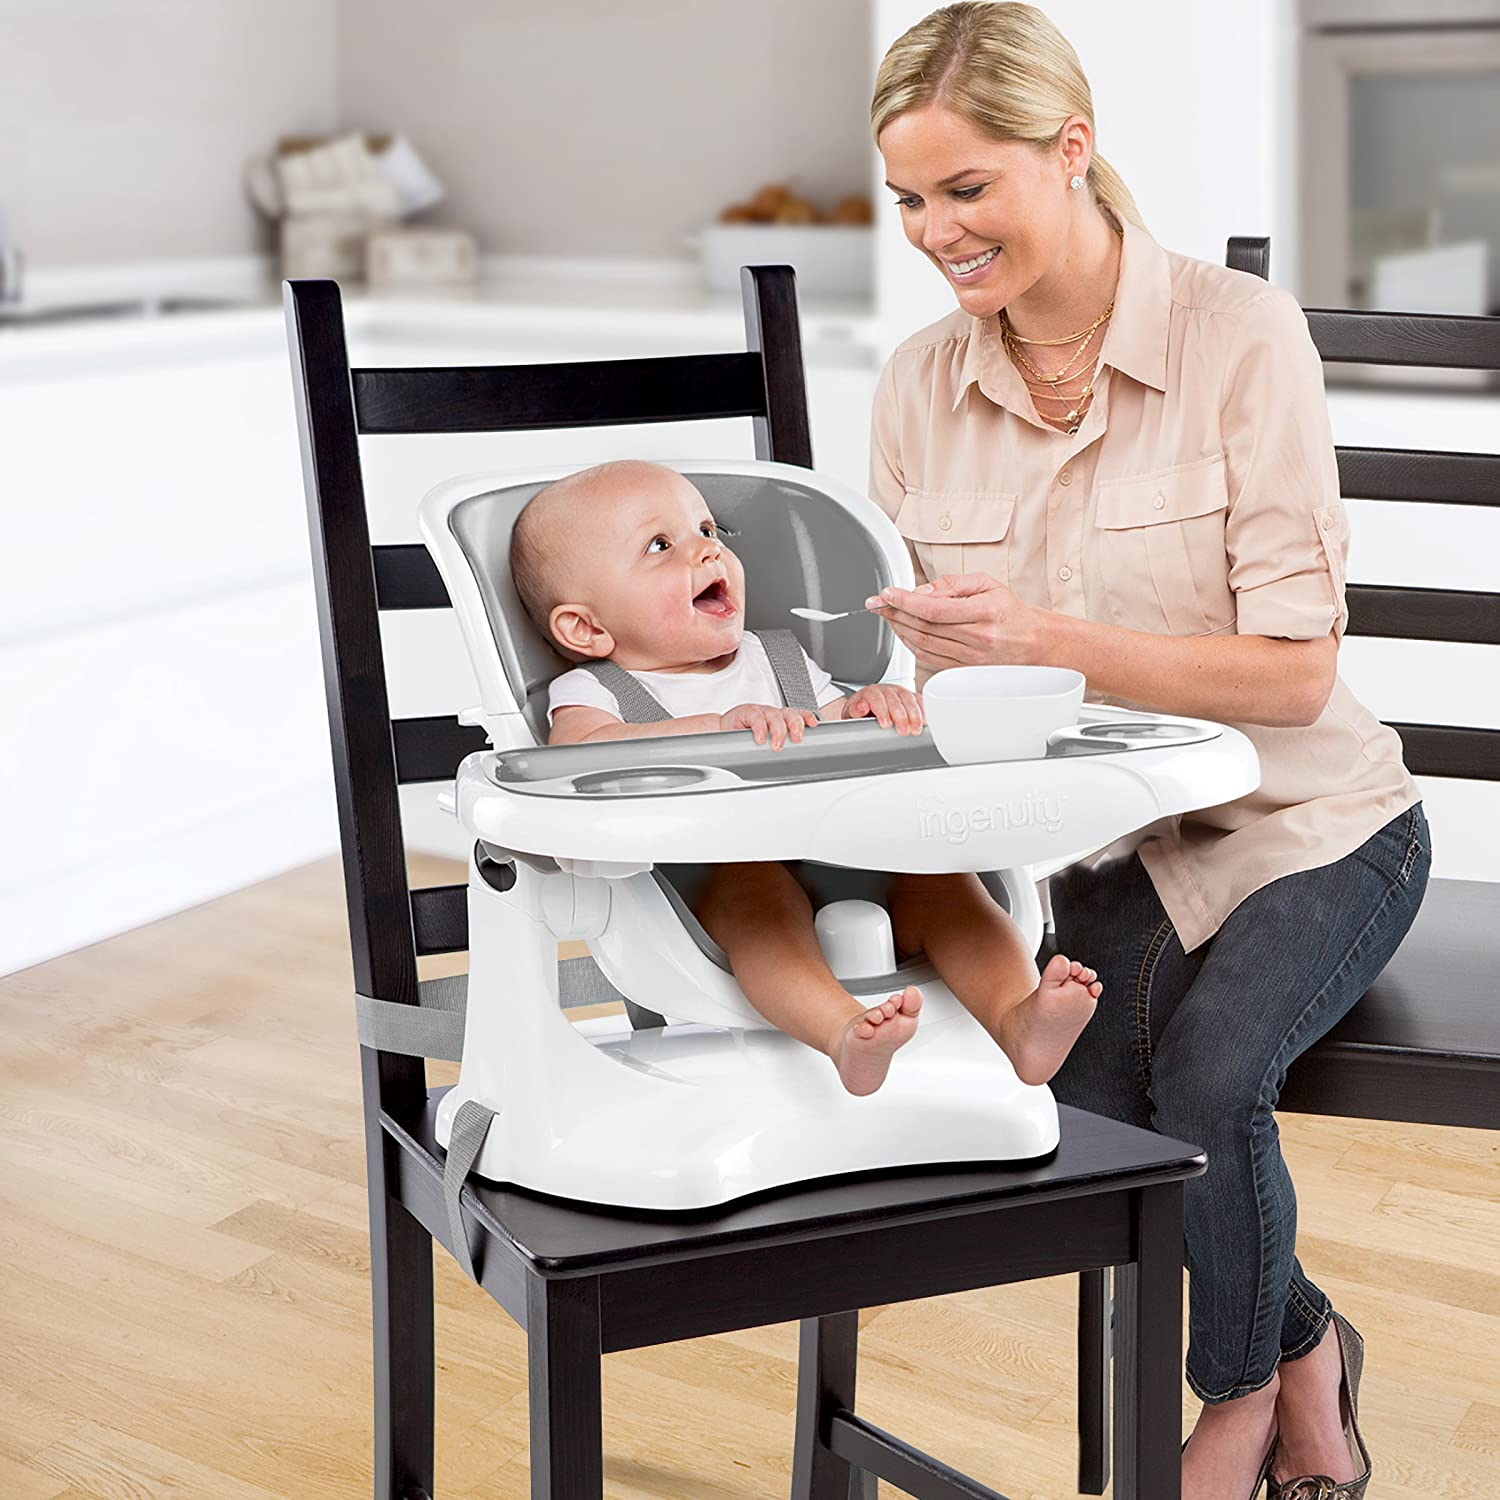 amazon com ingenuity smartclean chairmate chair top high chair